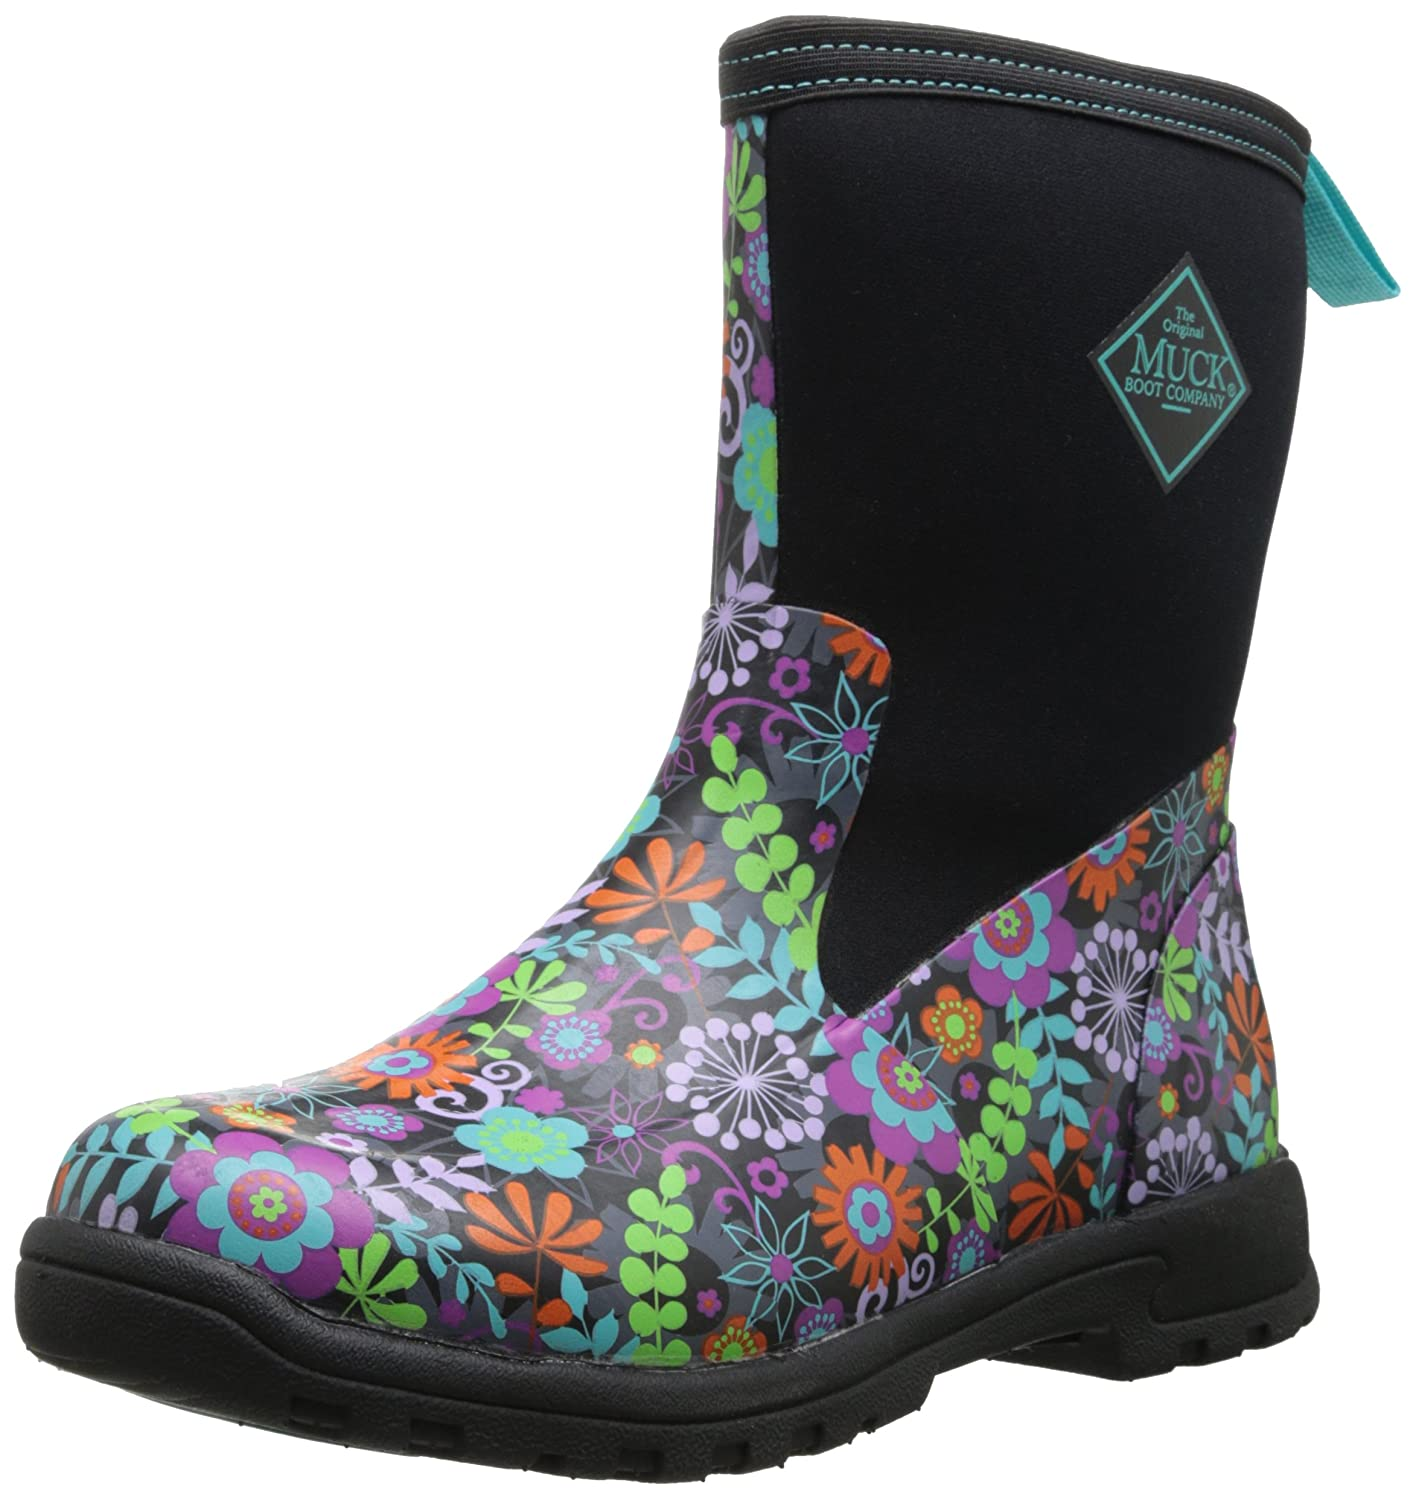 Muckboots Women S Breezy Mid Boot Black Floral 8 M Us